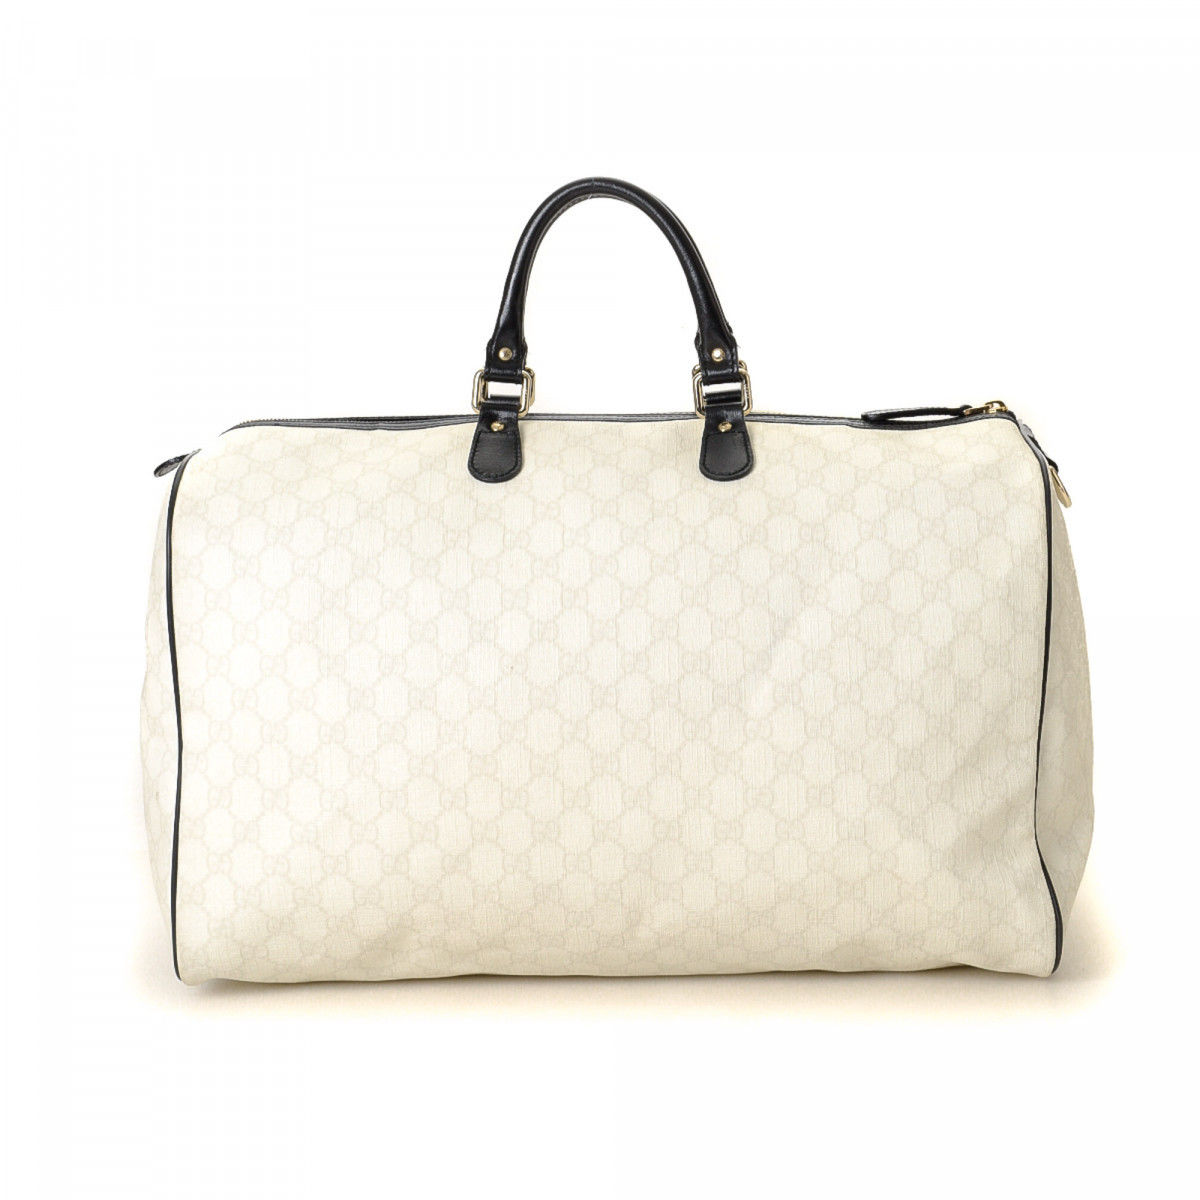 325343c48 Vintage Gucci Travel Bags   The Shred Centre